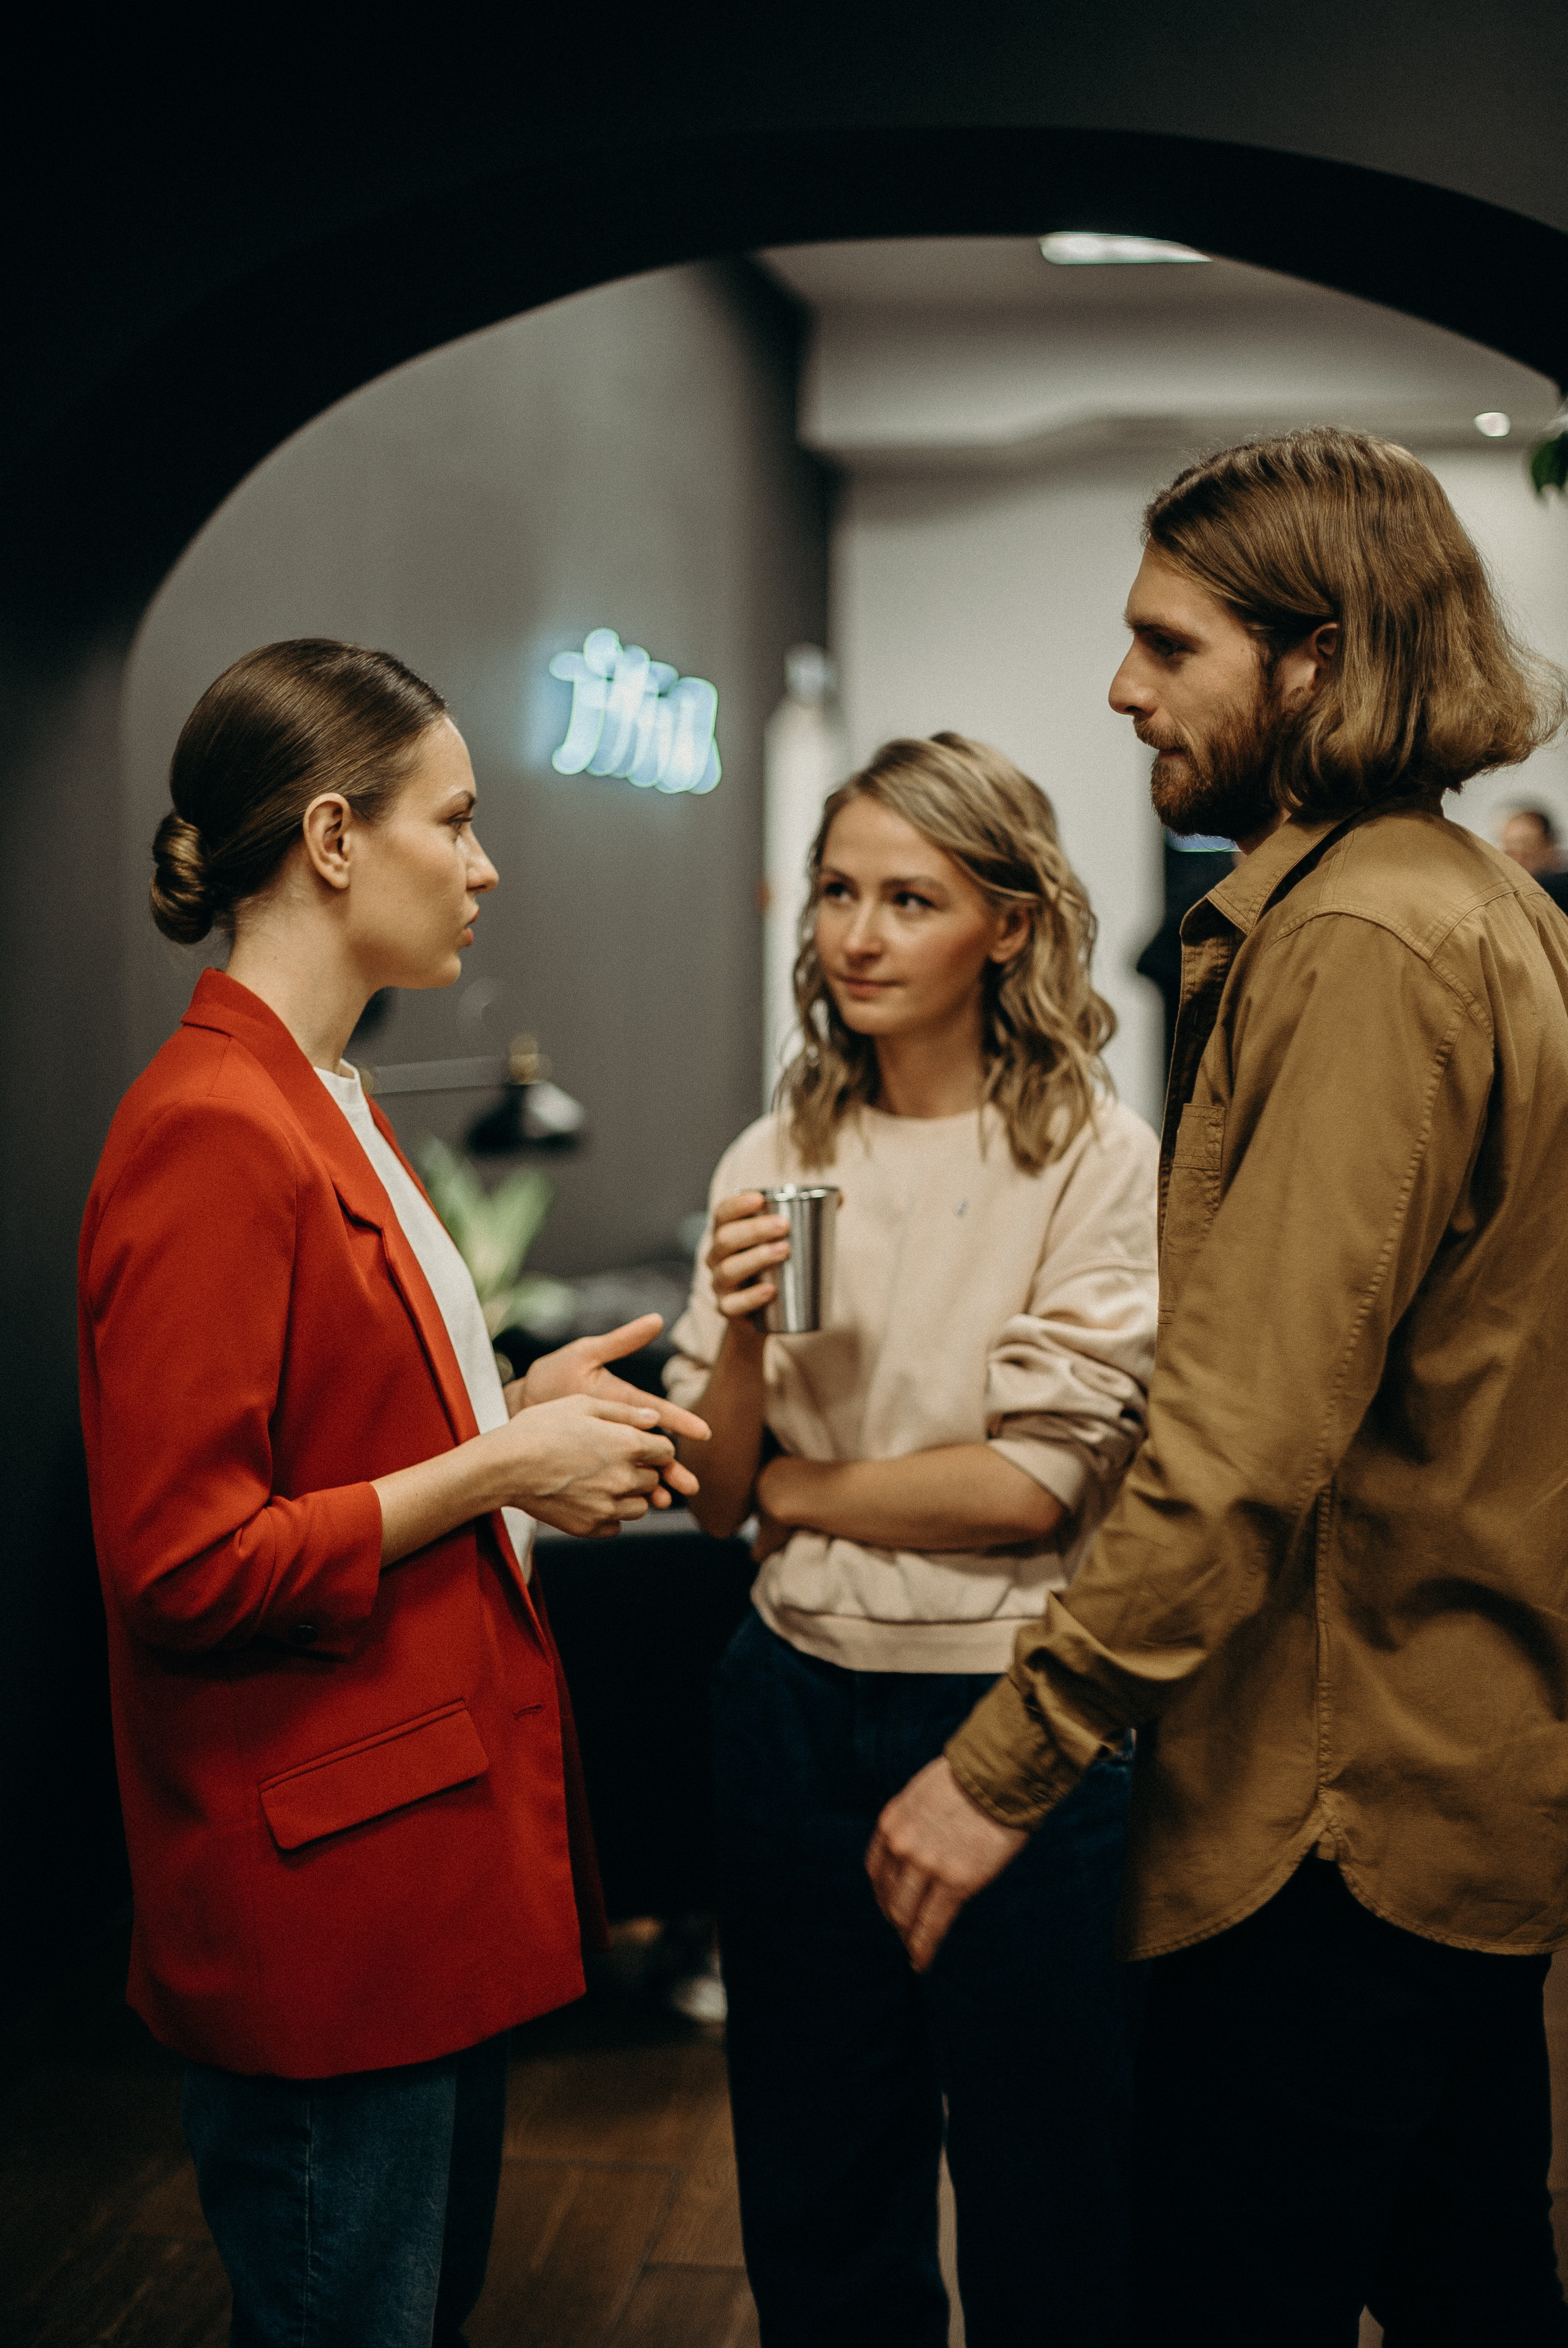 Two women and a man talking. | Photo: Pexels